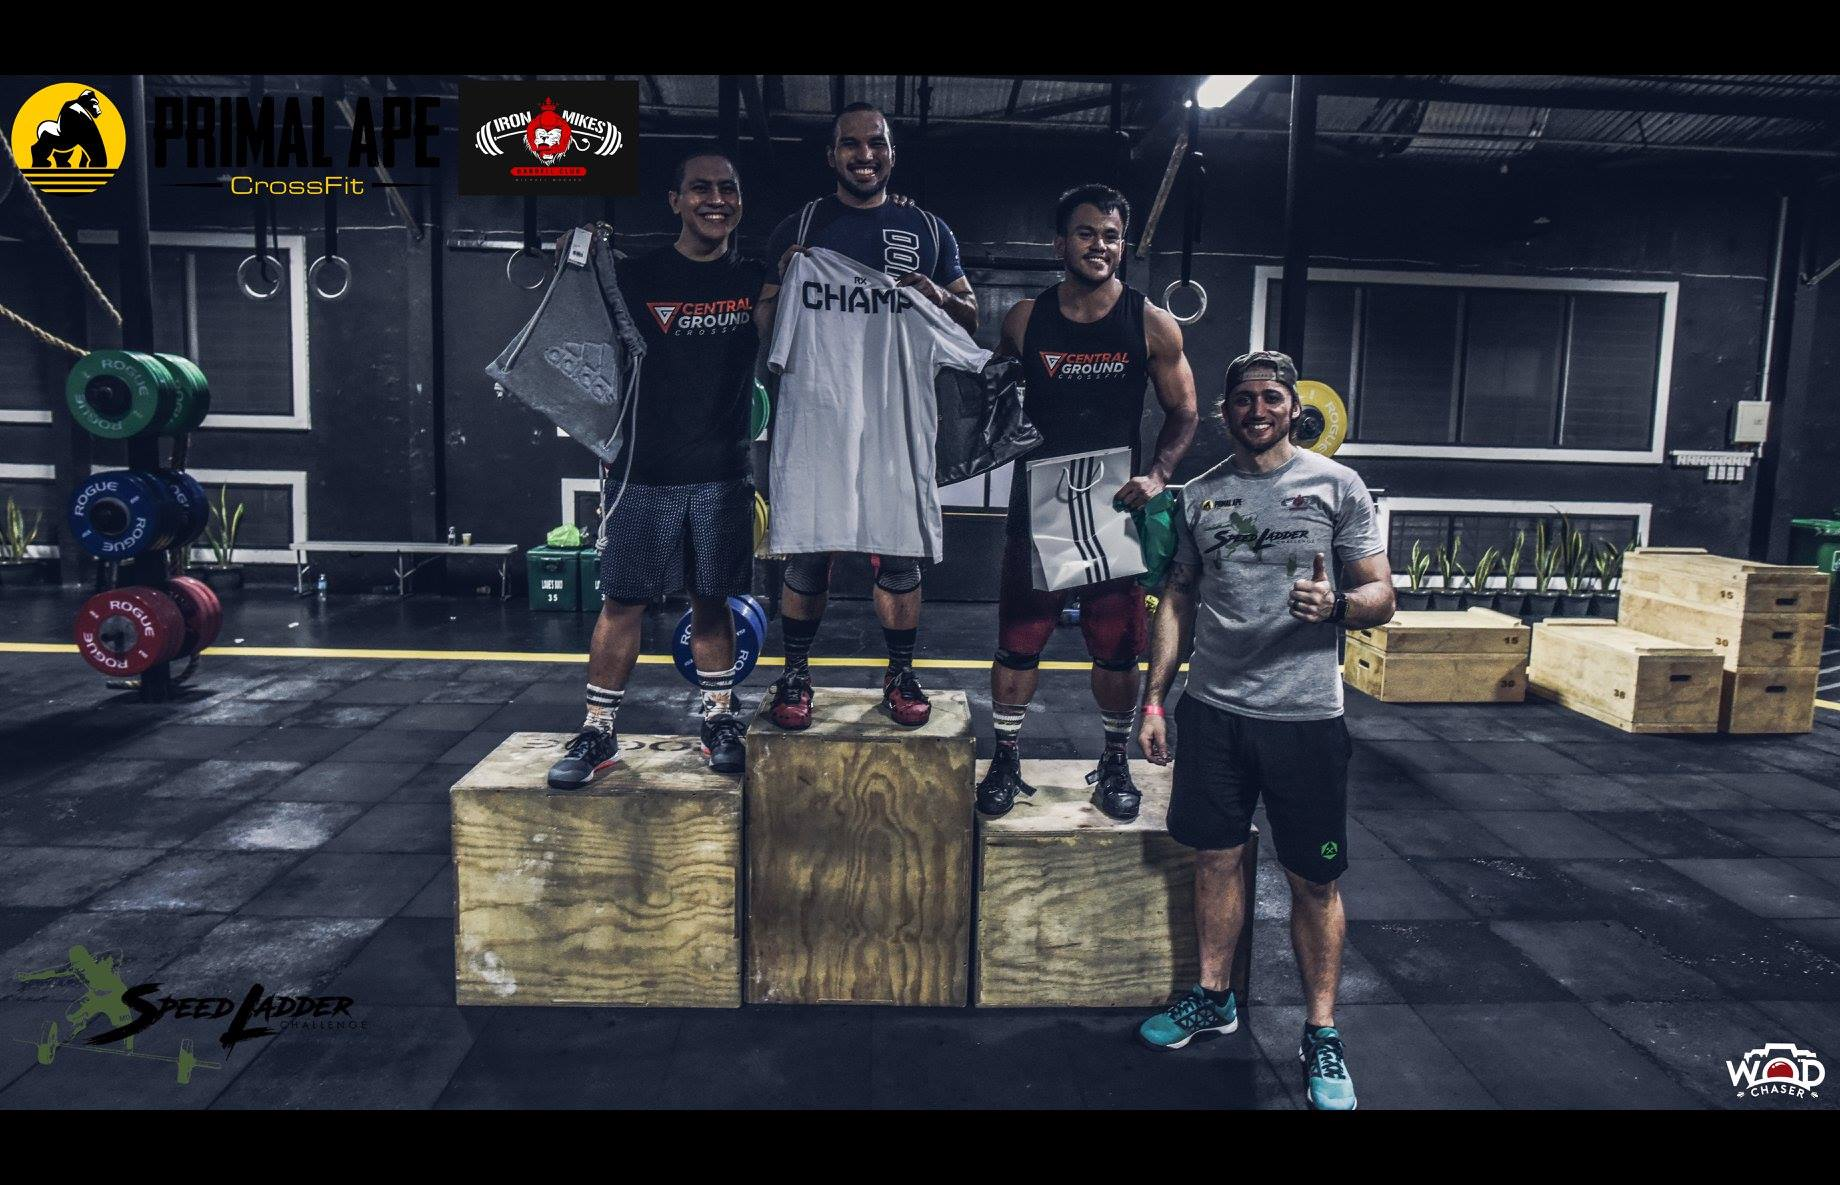 Jude Eslera hailed as the Champ of the Clean and Jerk - Men's RX, followed by Job Wi (left pulpit)and Benny Ledesma (right pulpit). Coach Trever Love, head coach of Primal Ape CrossFit. (Photo: WOD Chaser)